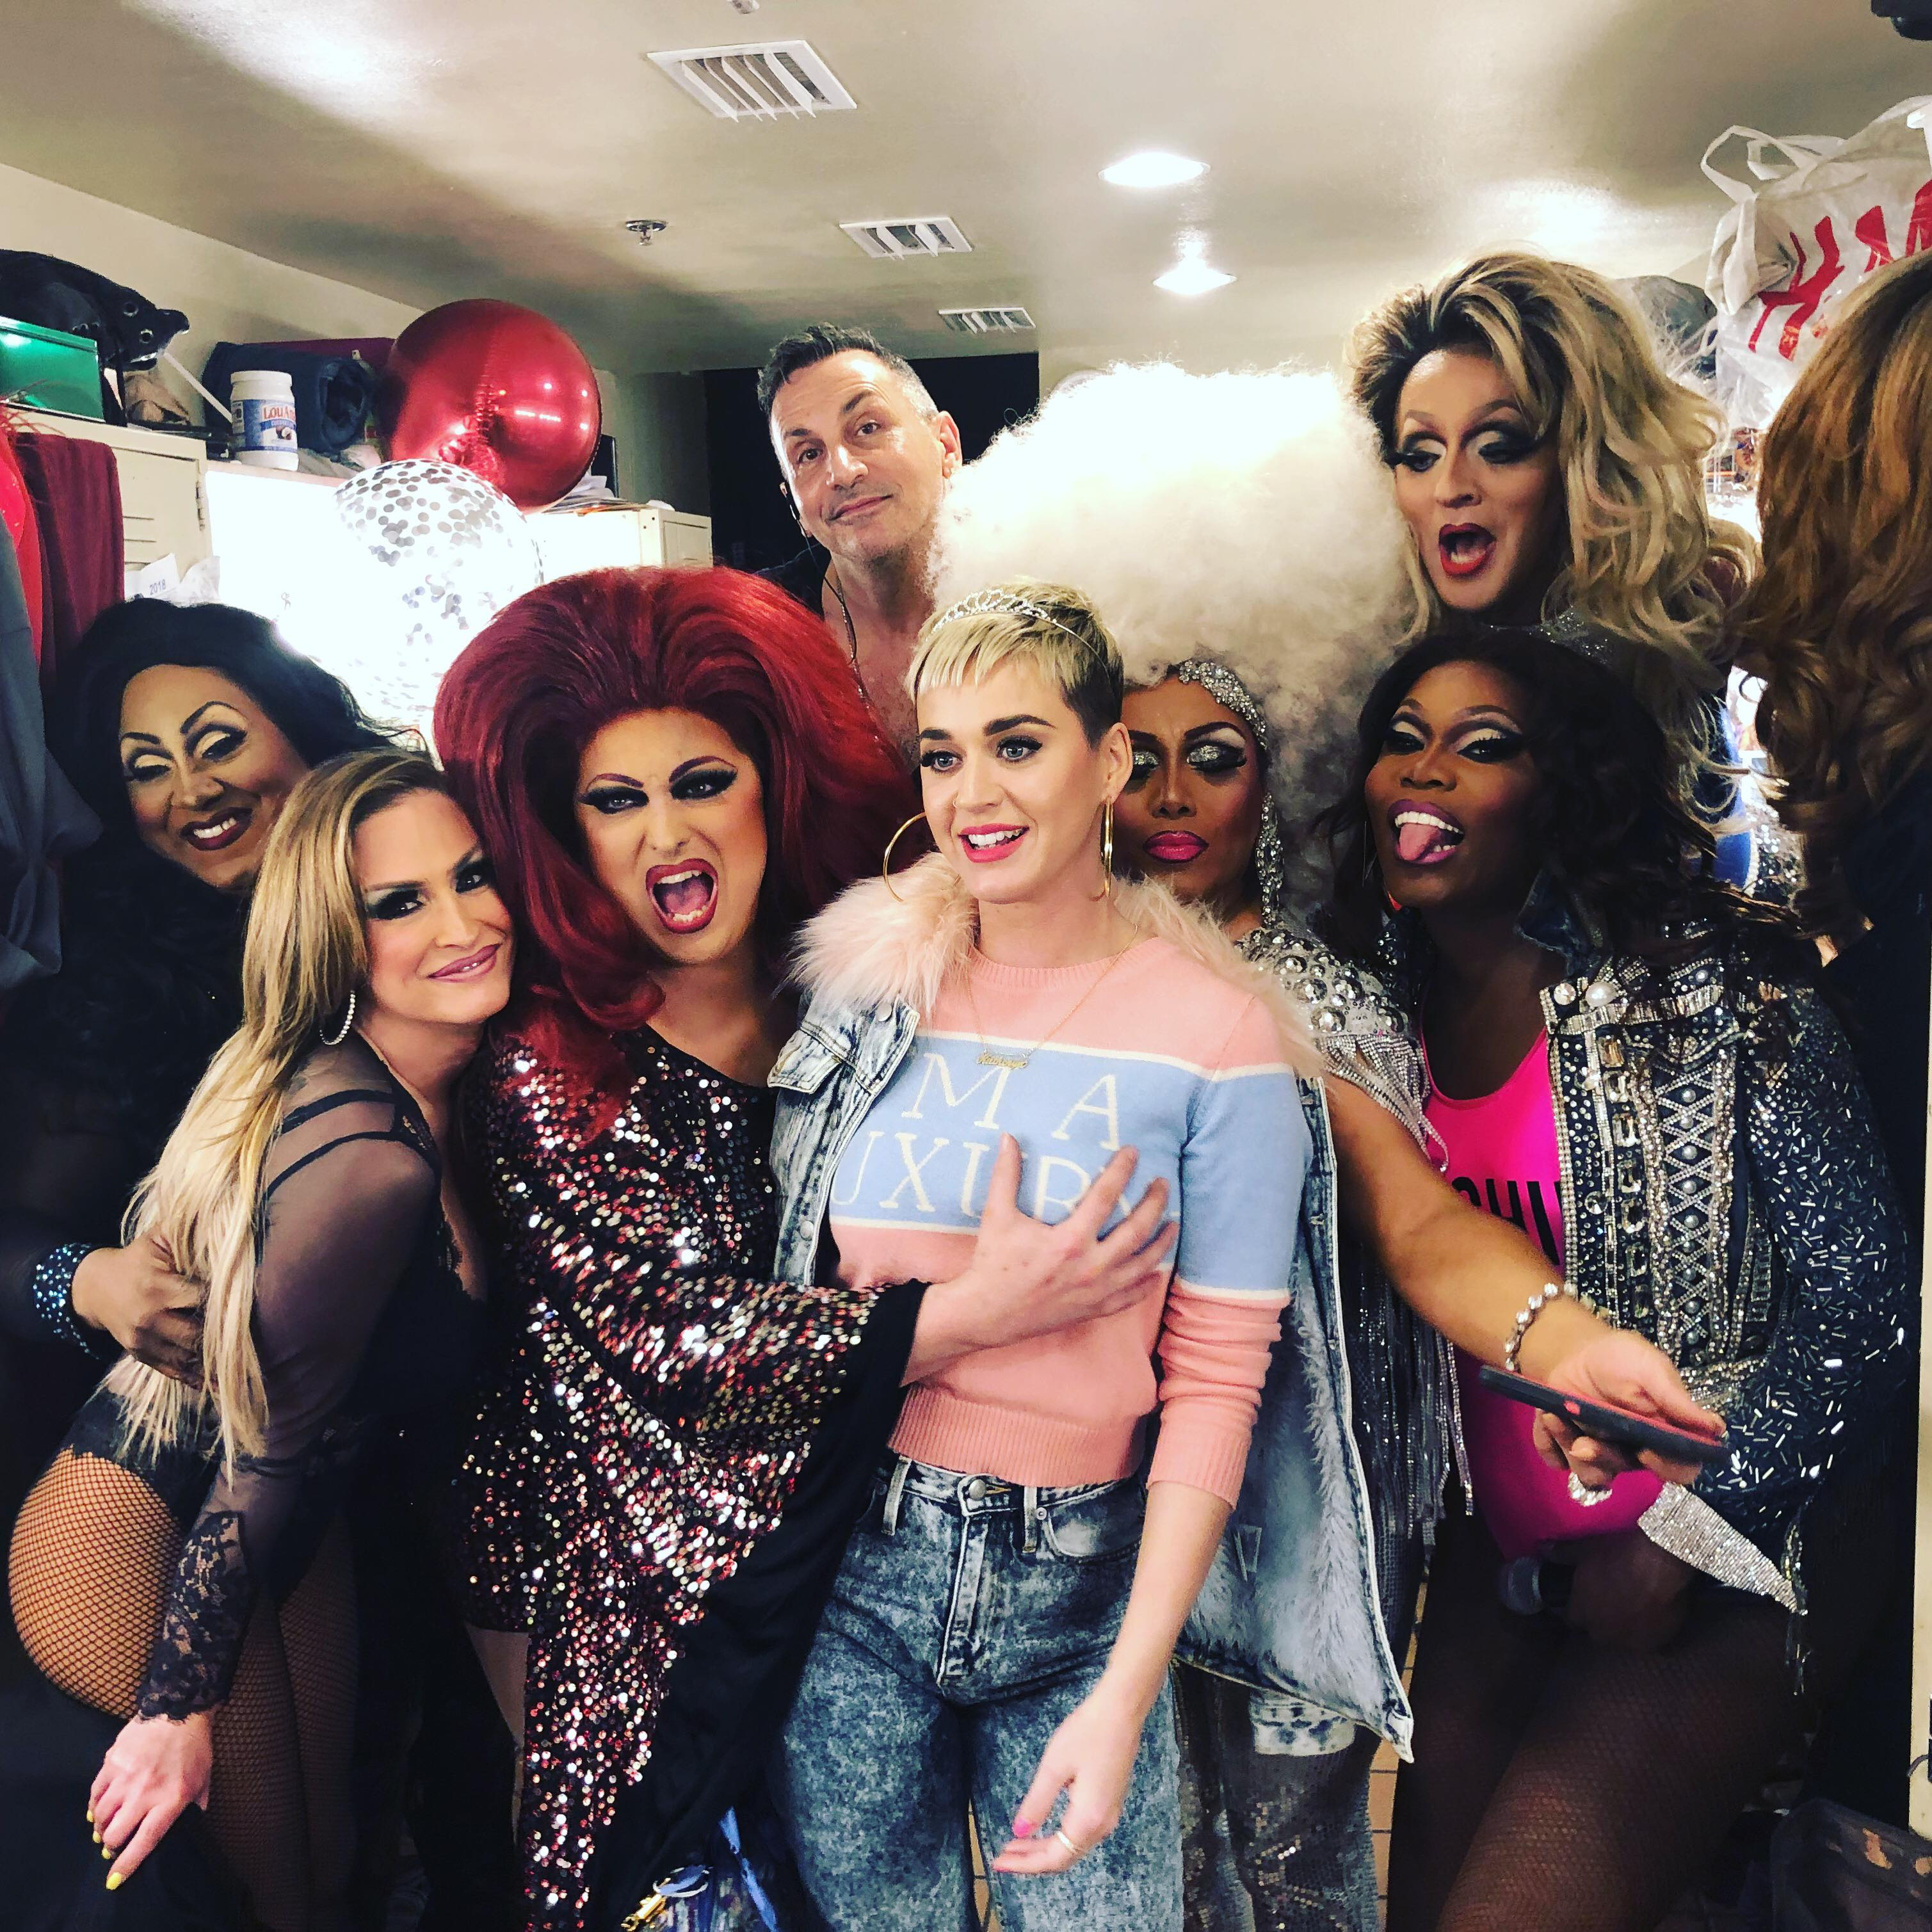 Katy Perry Spotted at S4's Rose Room Ahead Of Dallas Show